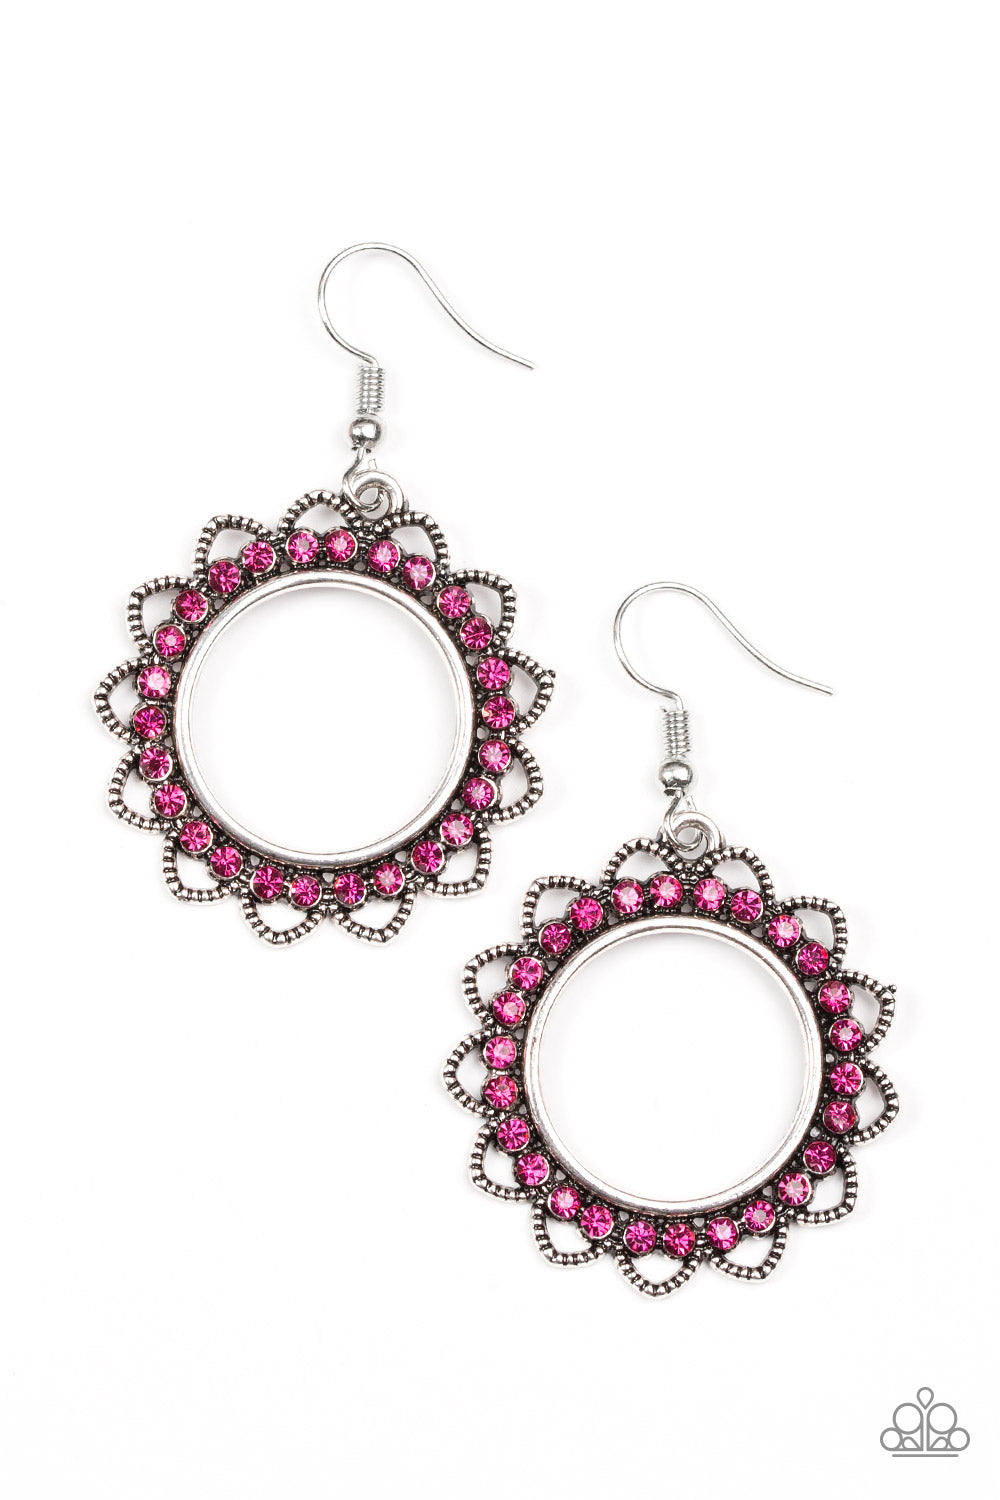 five-dollar-jewelry-bring-your-tambourine-pink-earrings-paparazzi-accessories